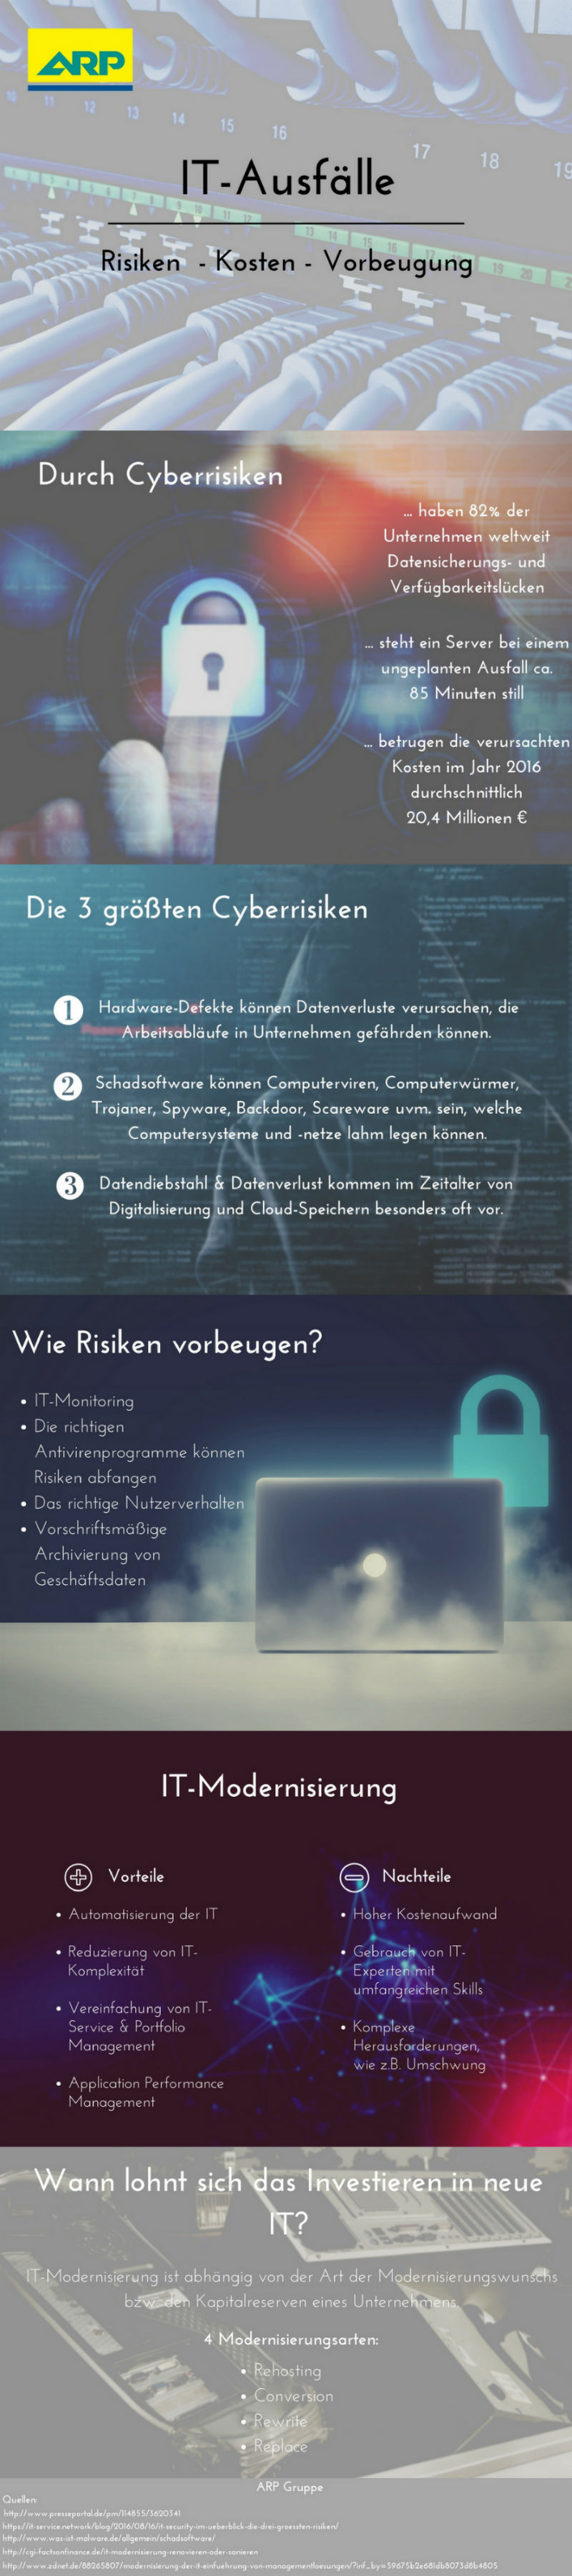 it-ausfaelle infografik